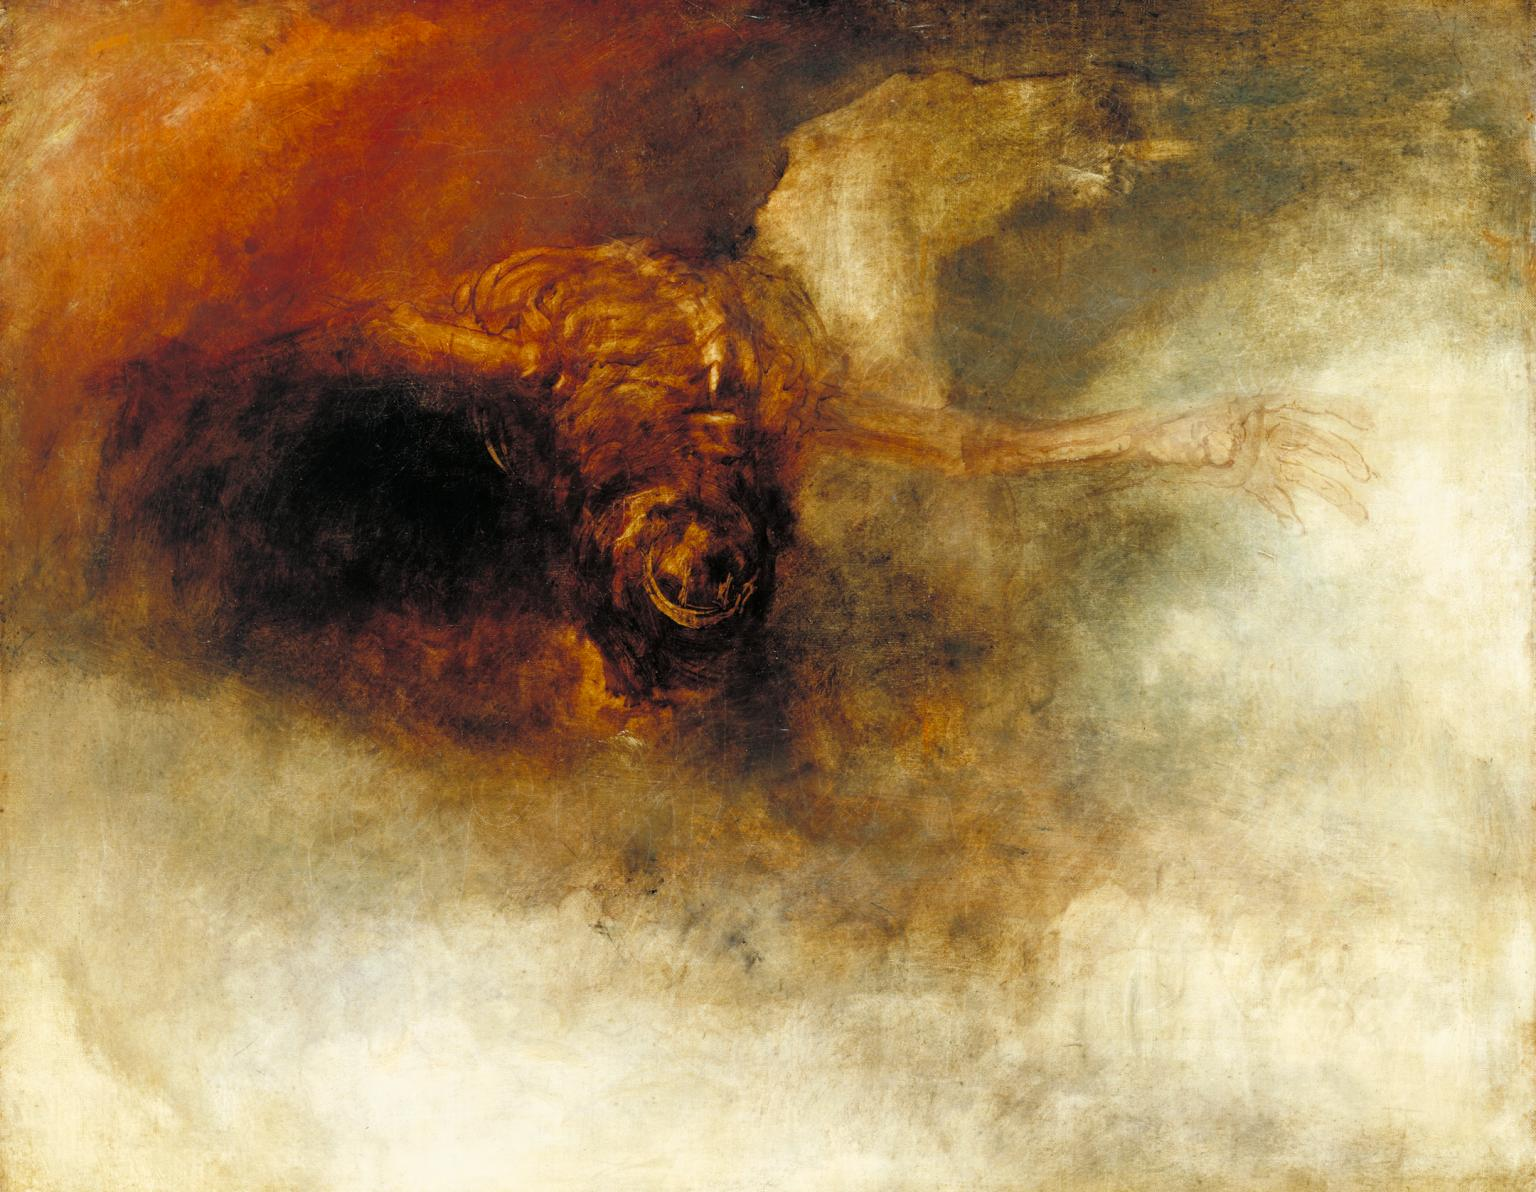 La caduta della anarchia (The Fall of Anarchy (?) di Joseph Mallord William Turner